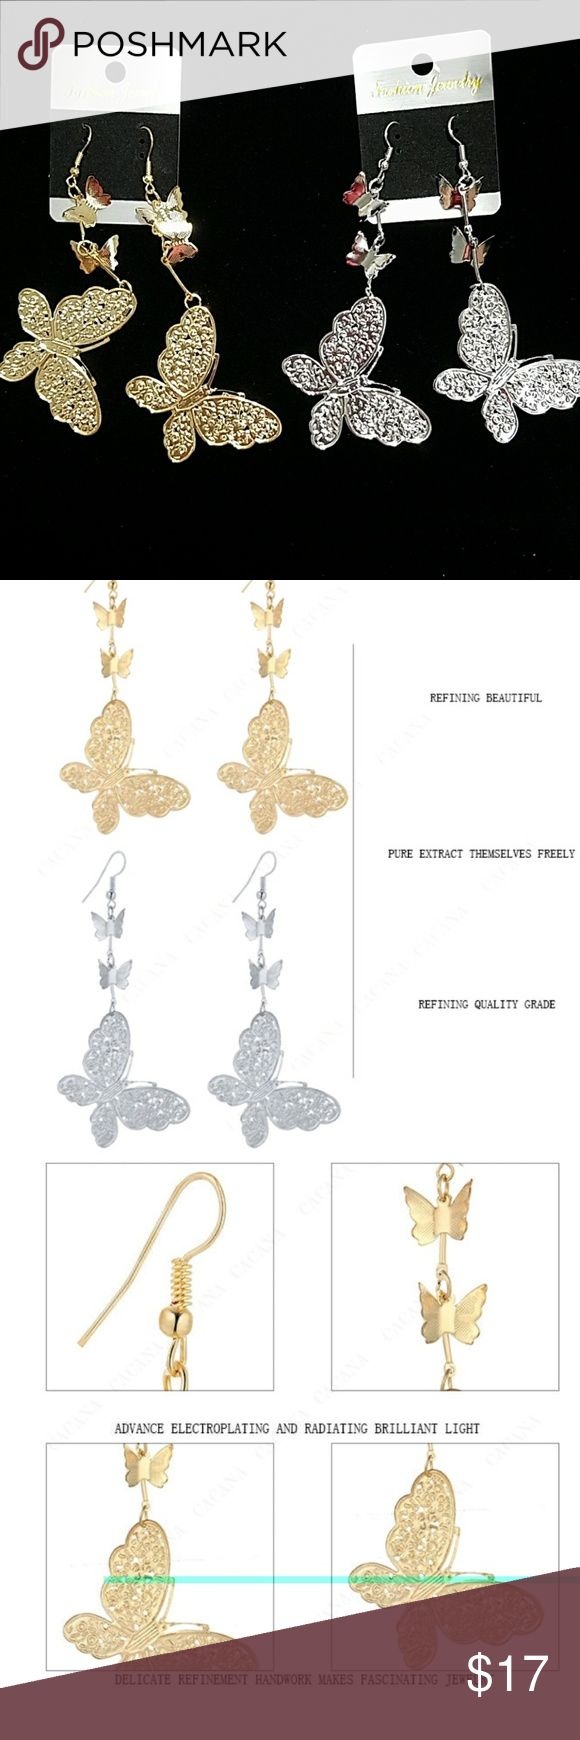 ANY 4 PAIRS FOR $15! DANGLING BUTTERFLY EARRINGS!! Design consists of butterflies. Earrings are not heavy so they won't make you feel weighted down & no worries about stretching out your earlobes! Earrings are thin, lightweight Alloy metal. They are priced great! Bundle & save on shipping! Choose Gold or Silver in Options. Once you add 4 pairs to your bundle, submit offer for $15 & it will be accepted! Gold stock# 121 Silver Stock # 221 Jewelry Earrings